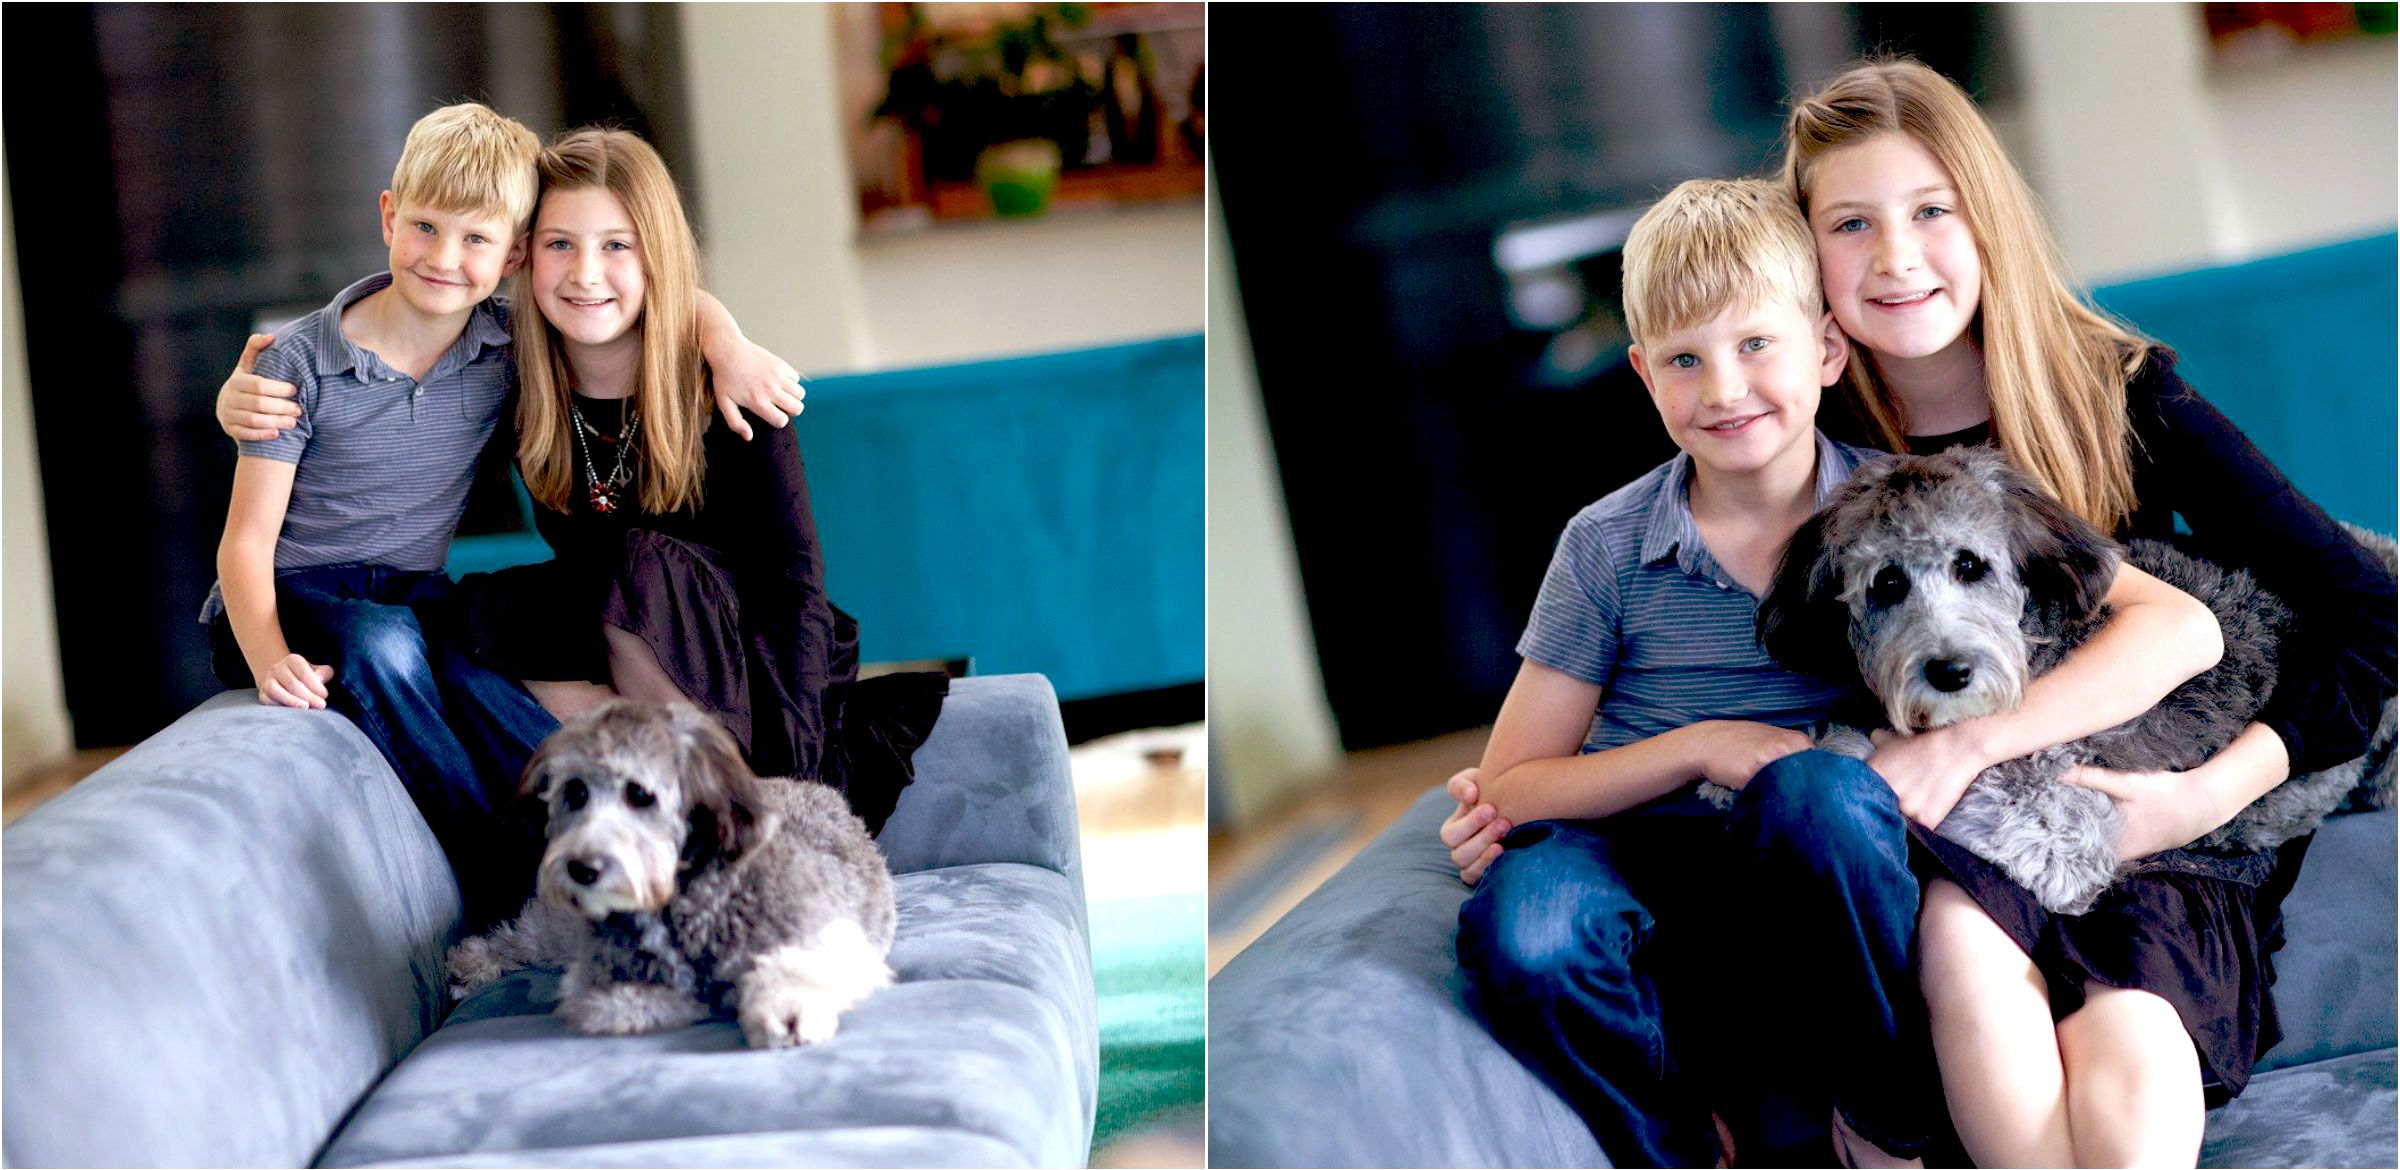 Lifestyle-photo-shoot-in-Denver-home-with-dog-002